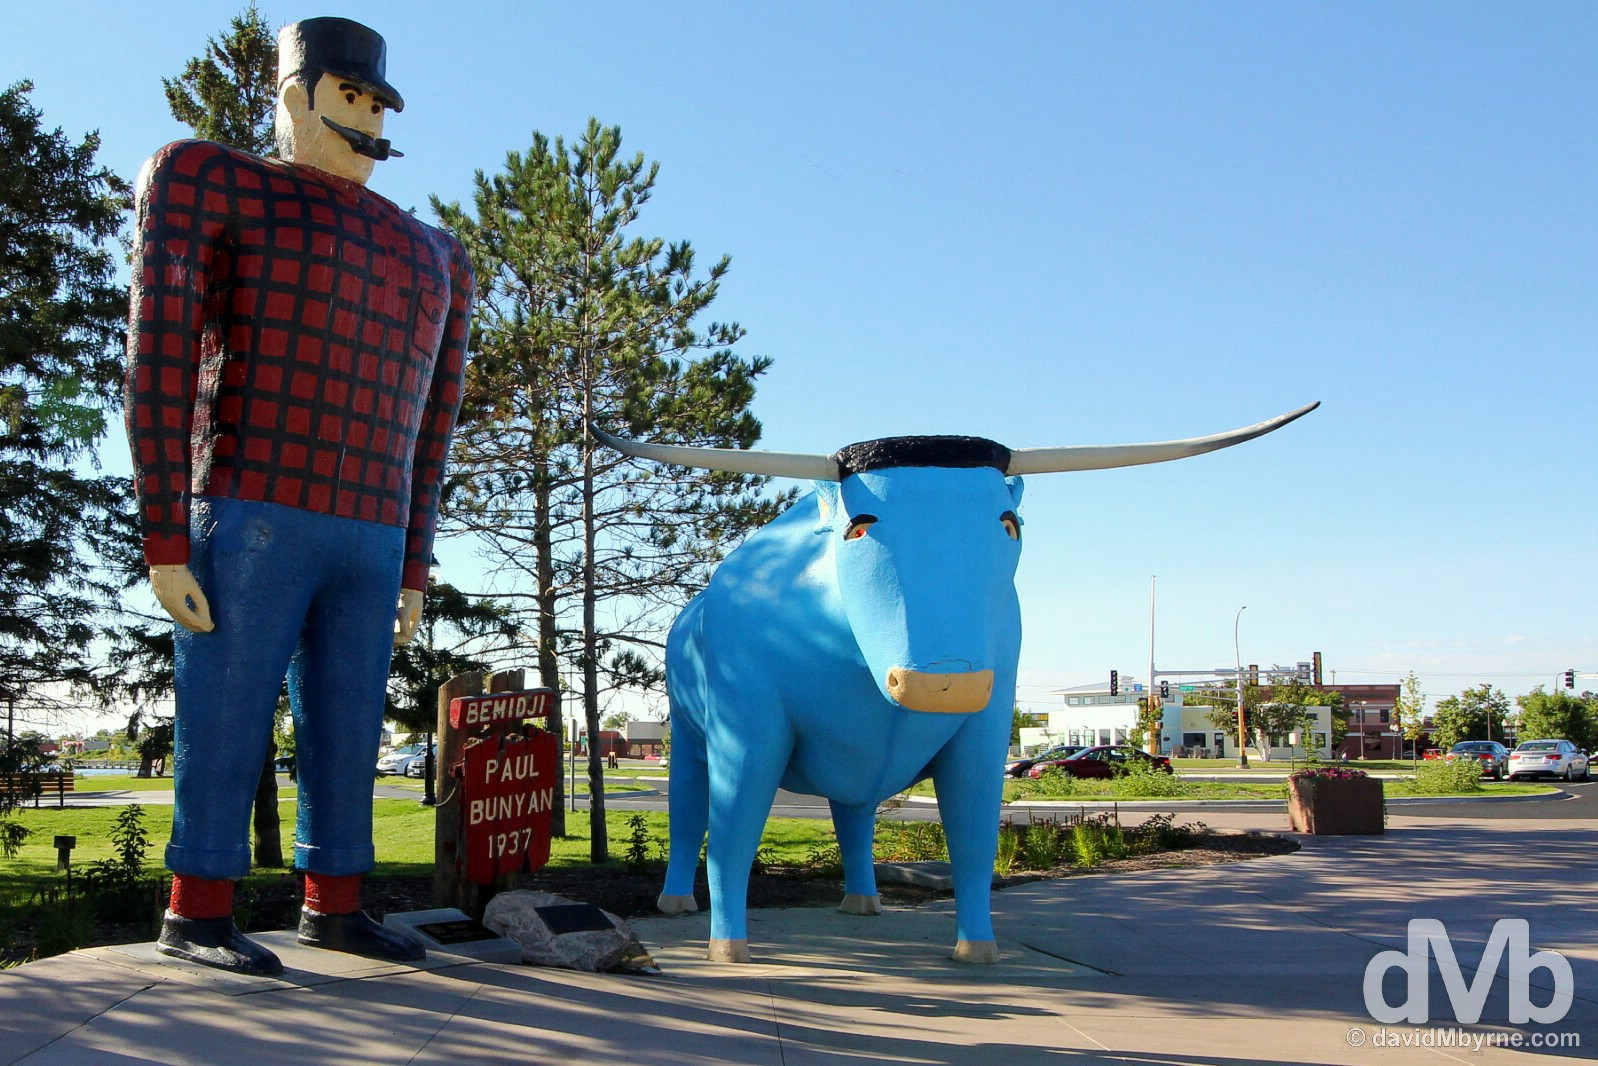 The Paul Bunyan & Babe the Blue Ox statue in Paul Bunyam Park on the shores of Lake Bemidji, Bemidji, northern Minnesota, USA. August 31, 2016.